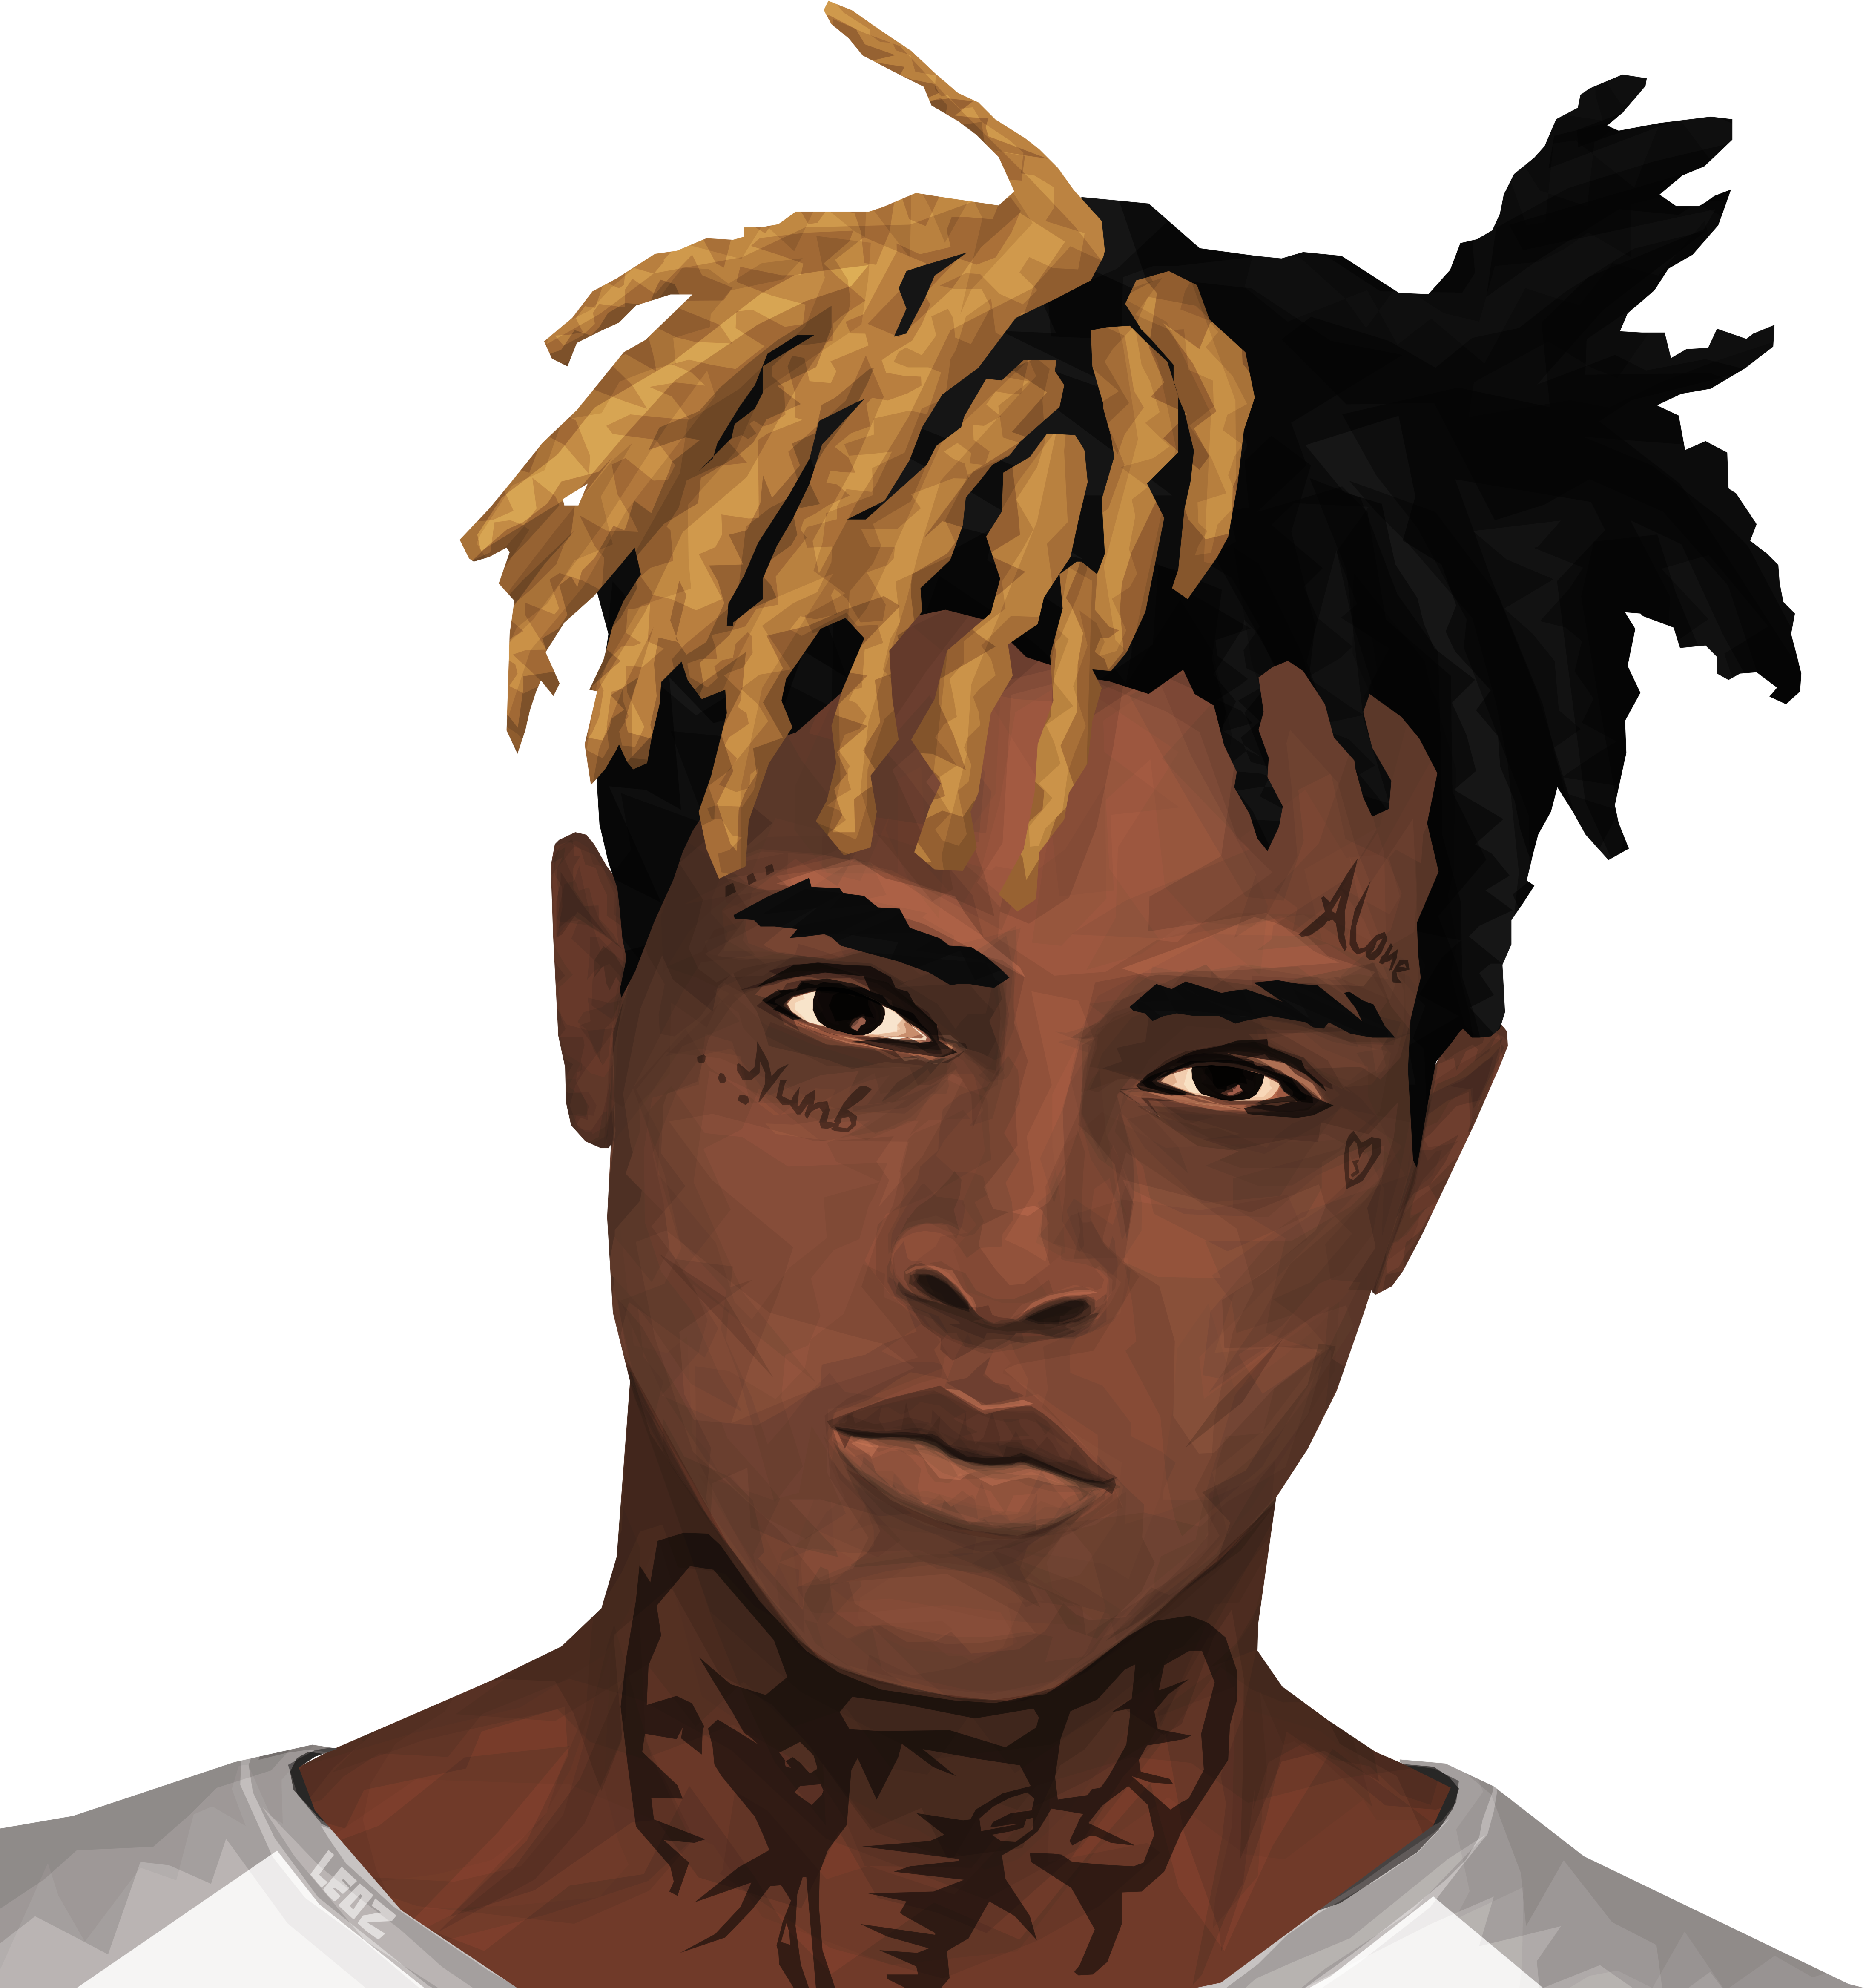 5000 X 5000 14 0 Tyler The Creator And Xxxtentacion Clipart Full Size Clipart 4074689 Pinclipart